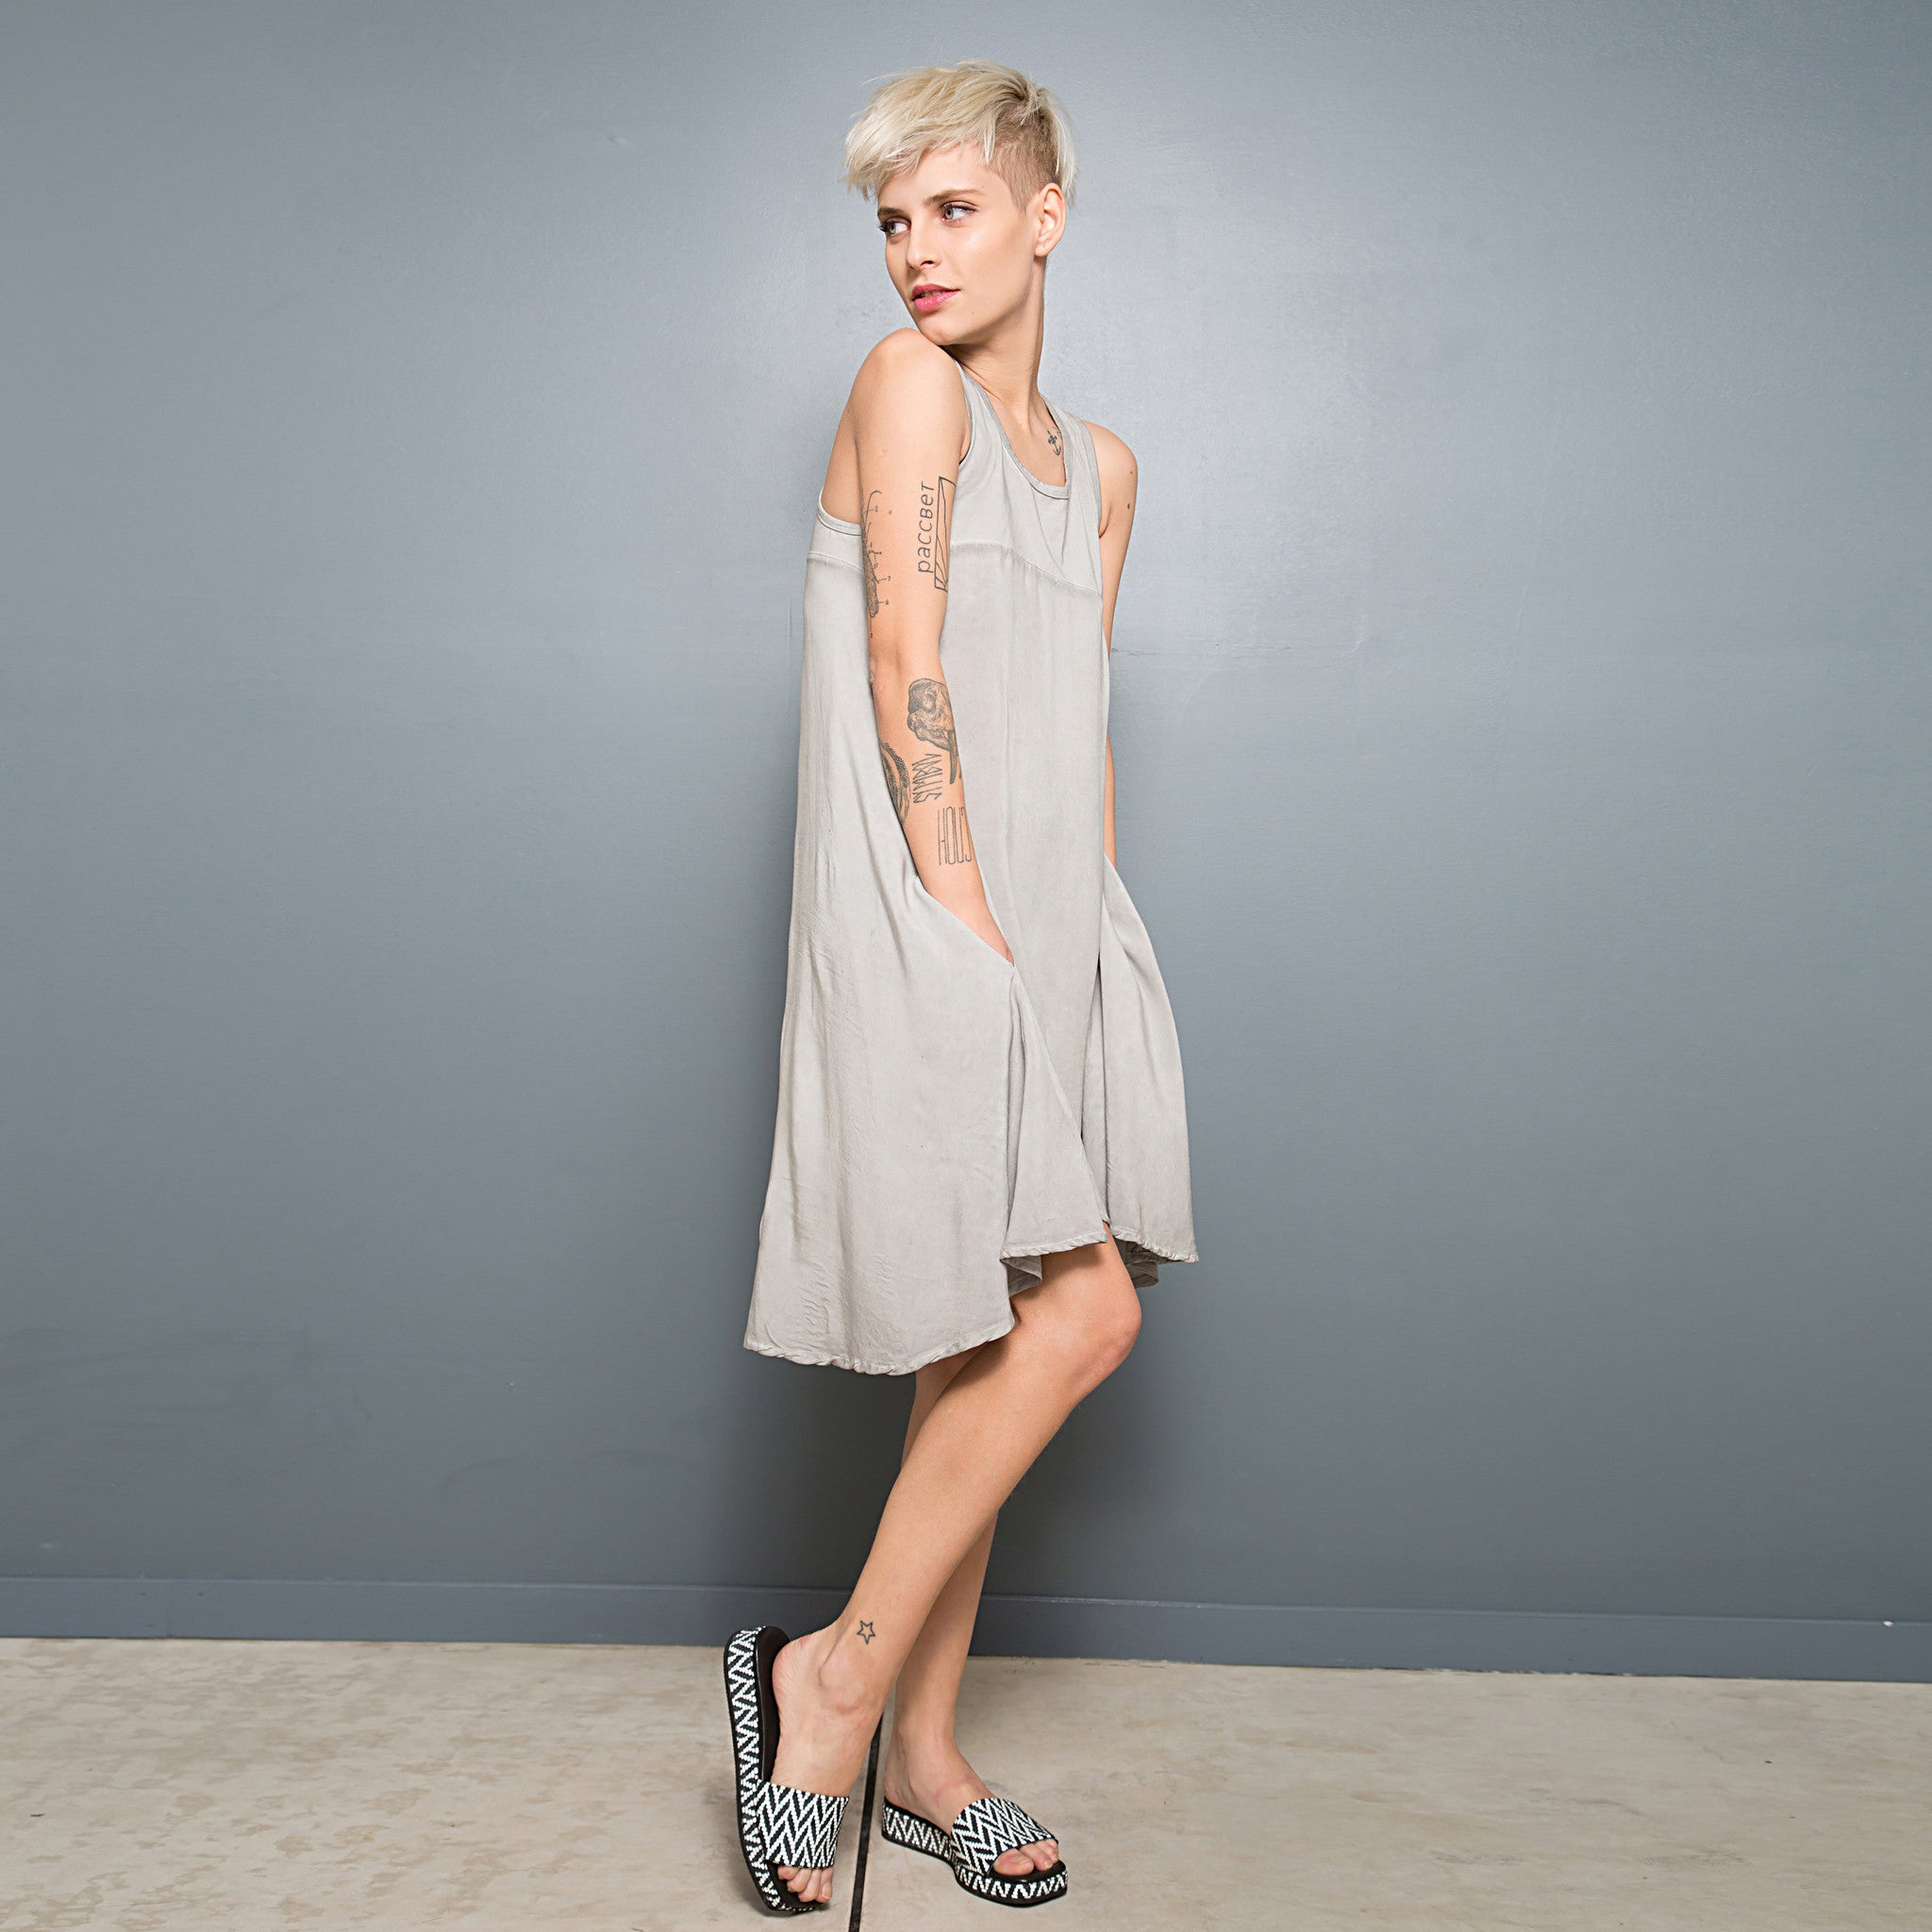 Half jersey half viscose summer dress - DuendeFashion  - 3